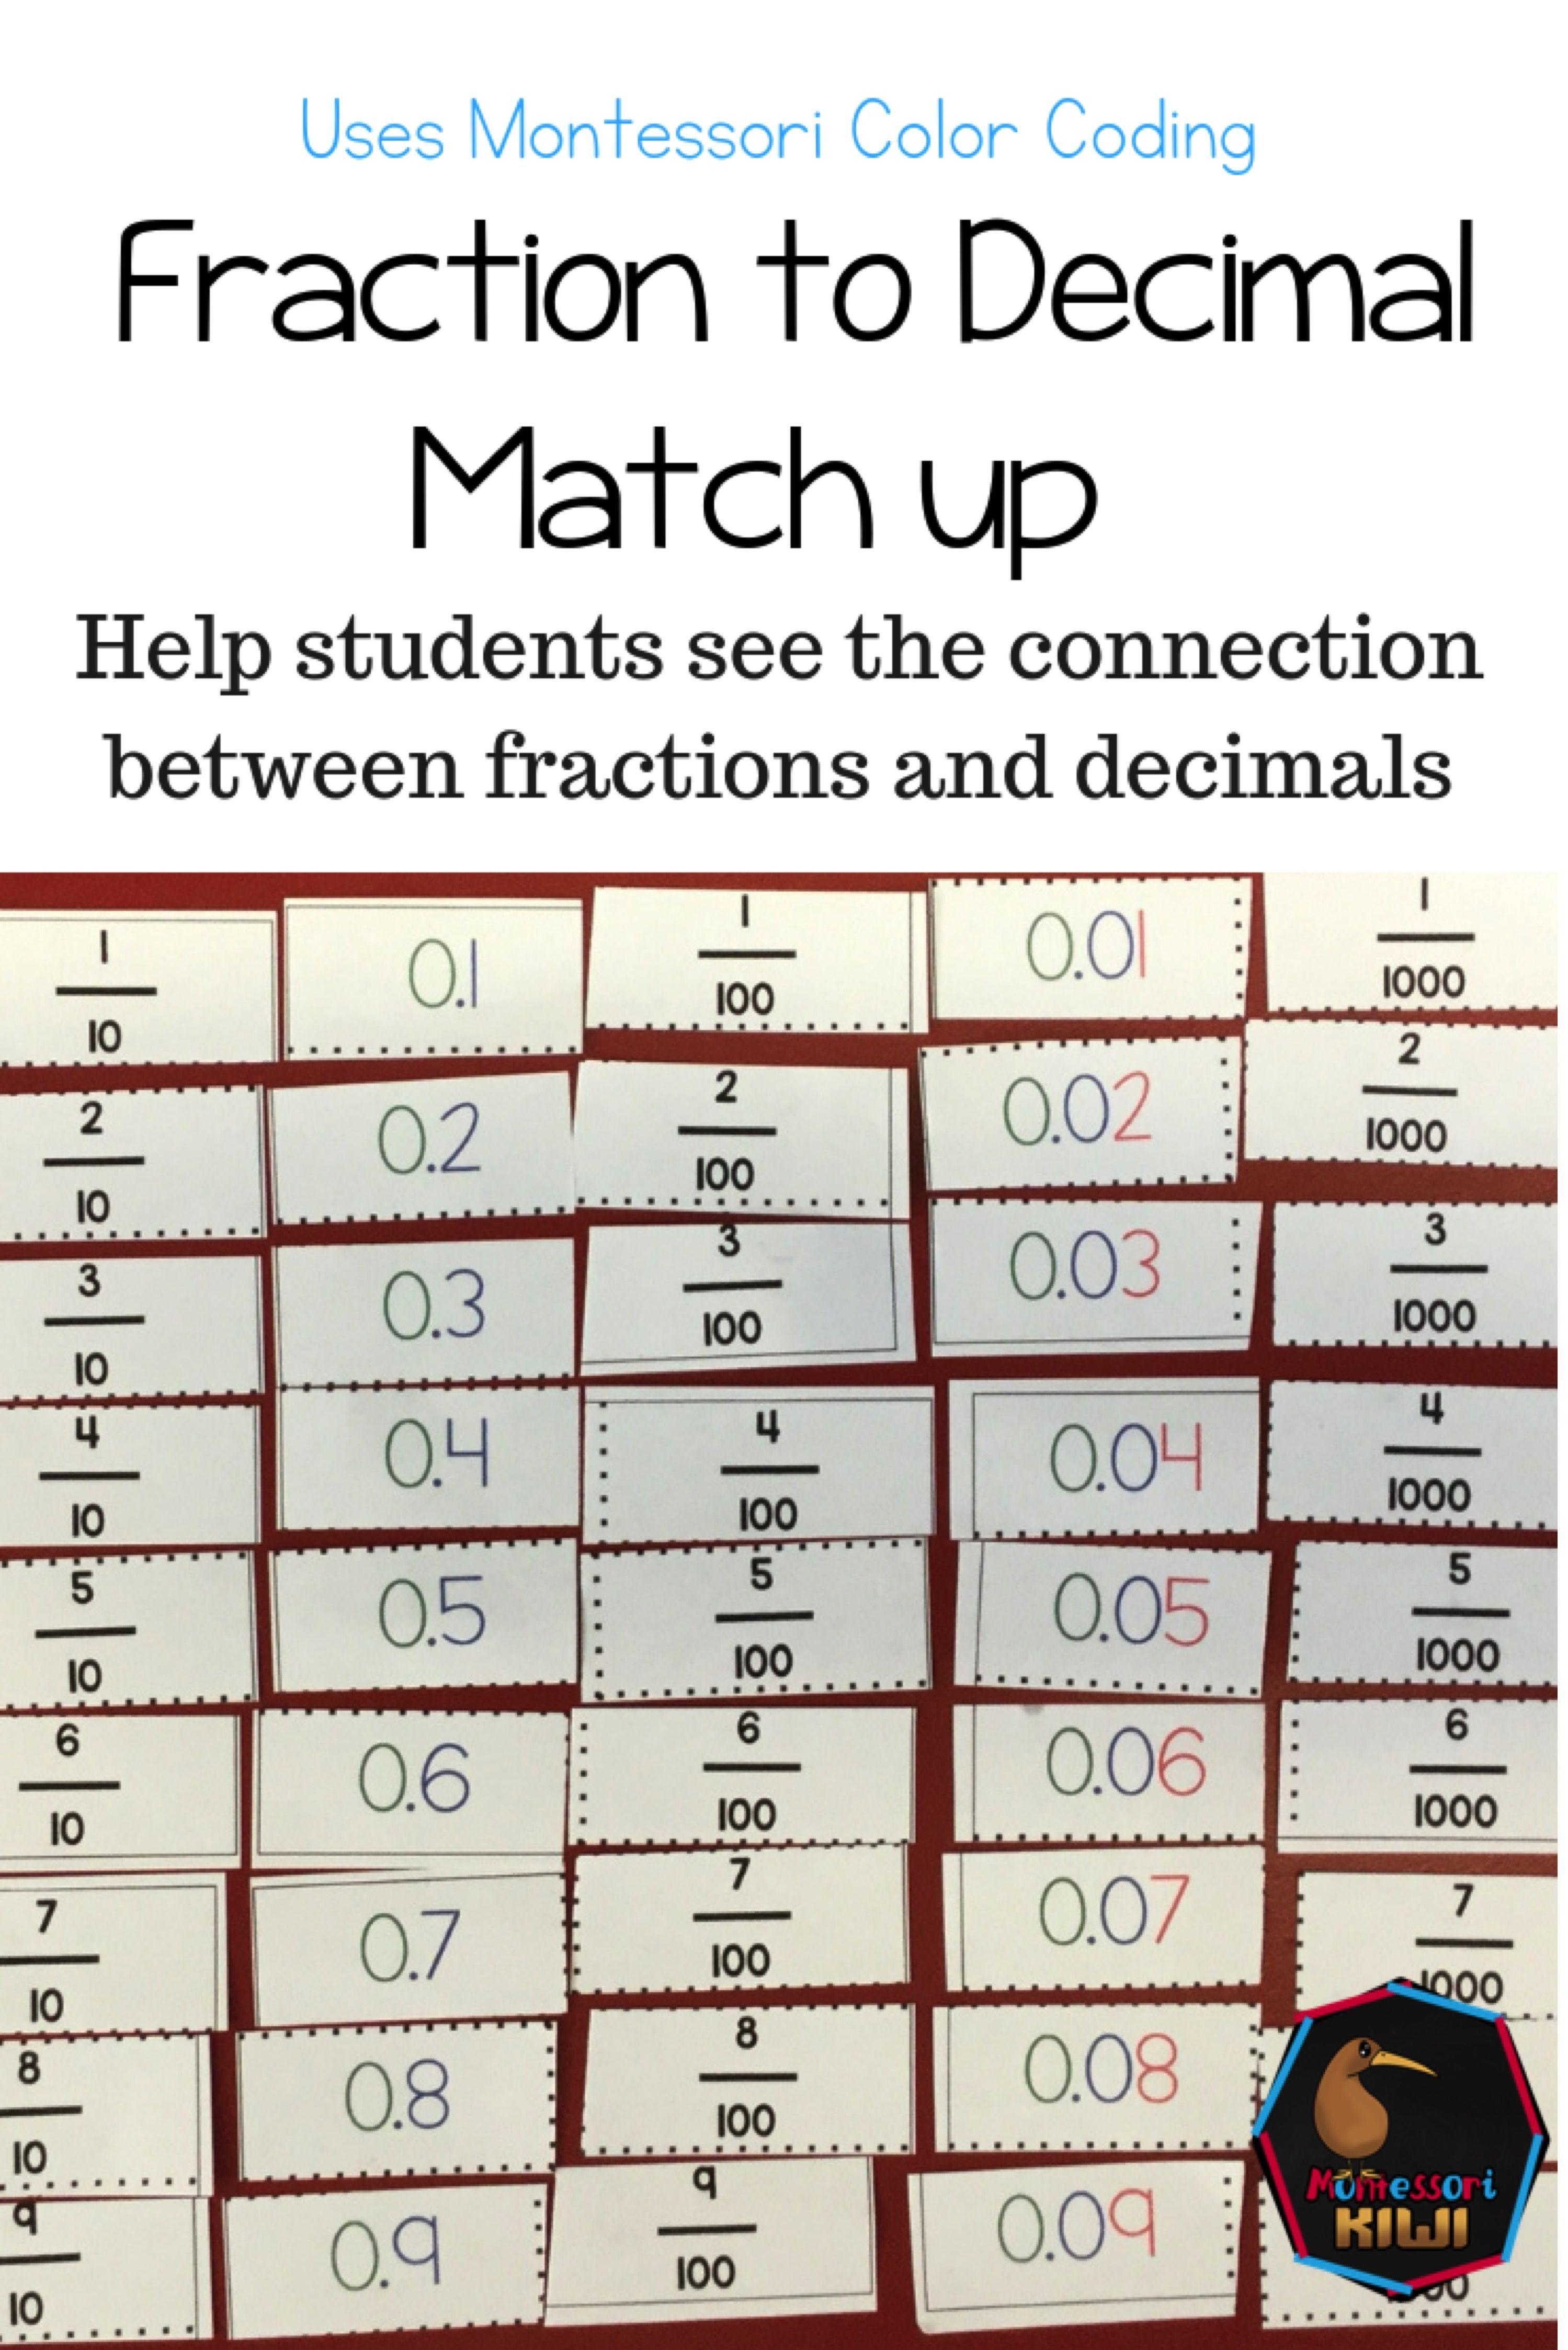 Comparing Fractions To Decimals Match Up